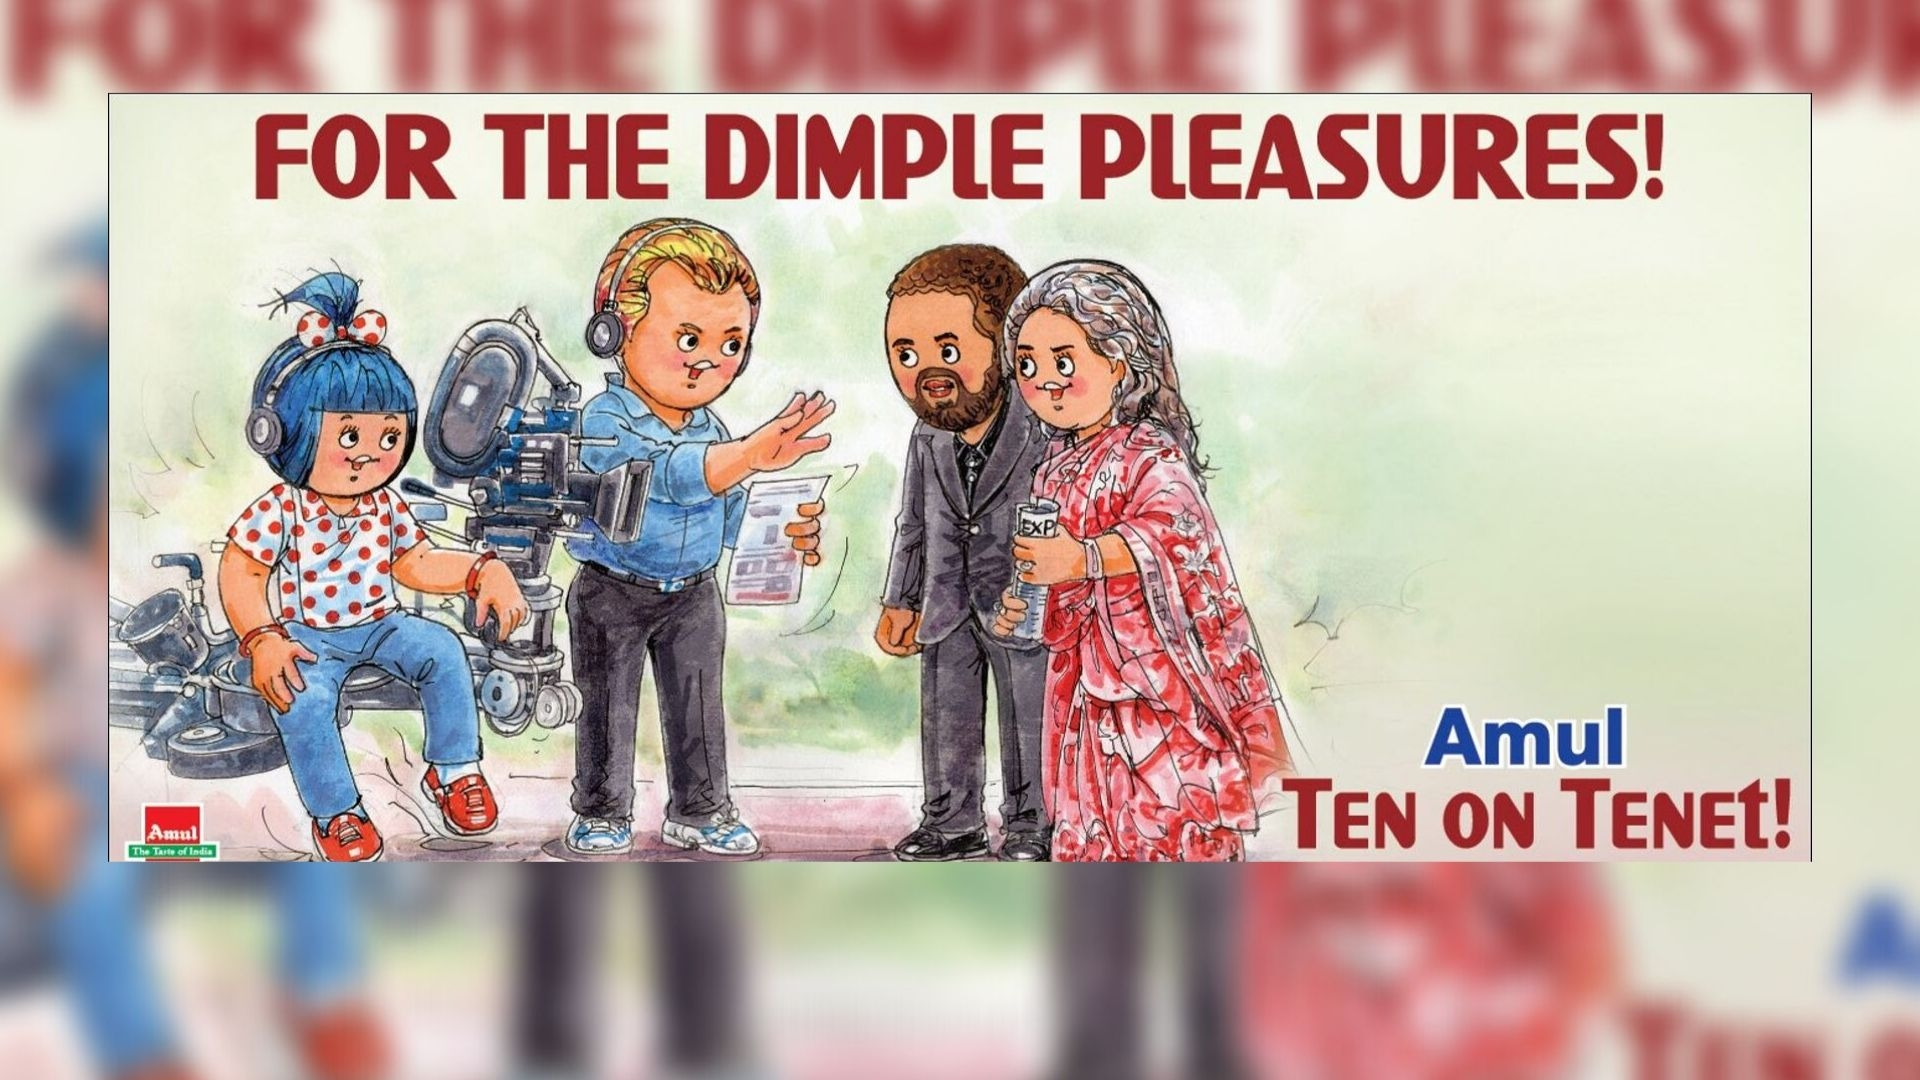 Amul Finds Christopher Nolan's 'Tenet' a 'Dimple Pleasure'